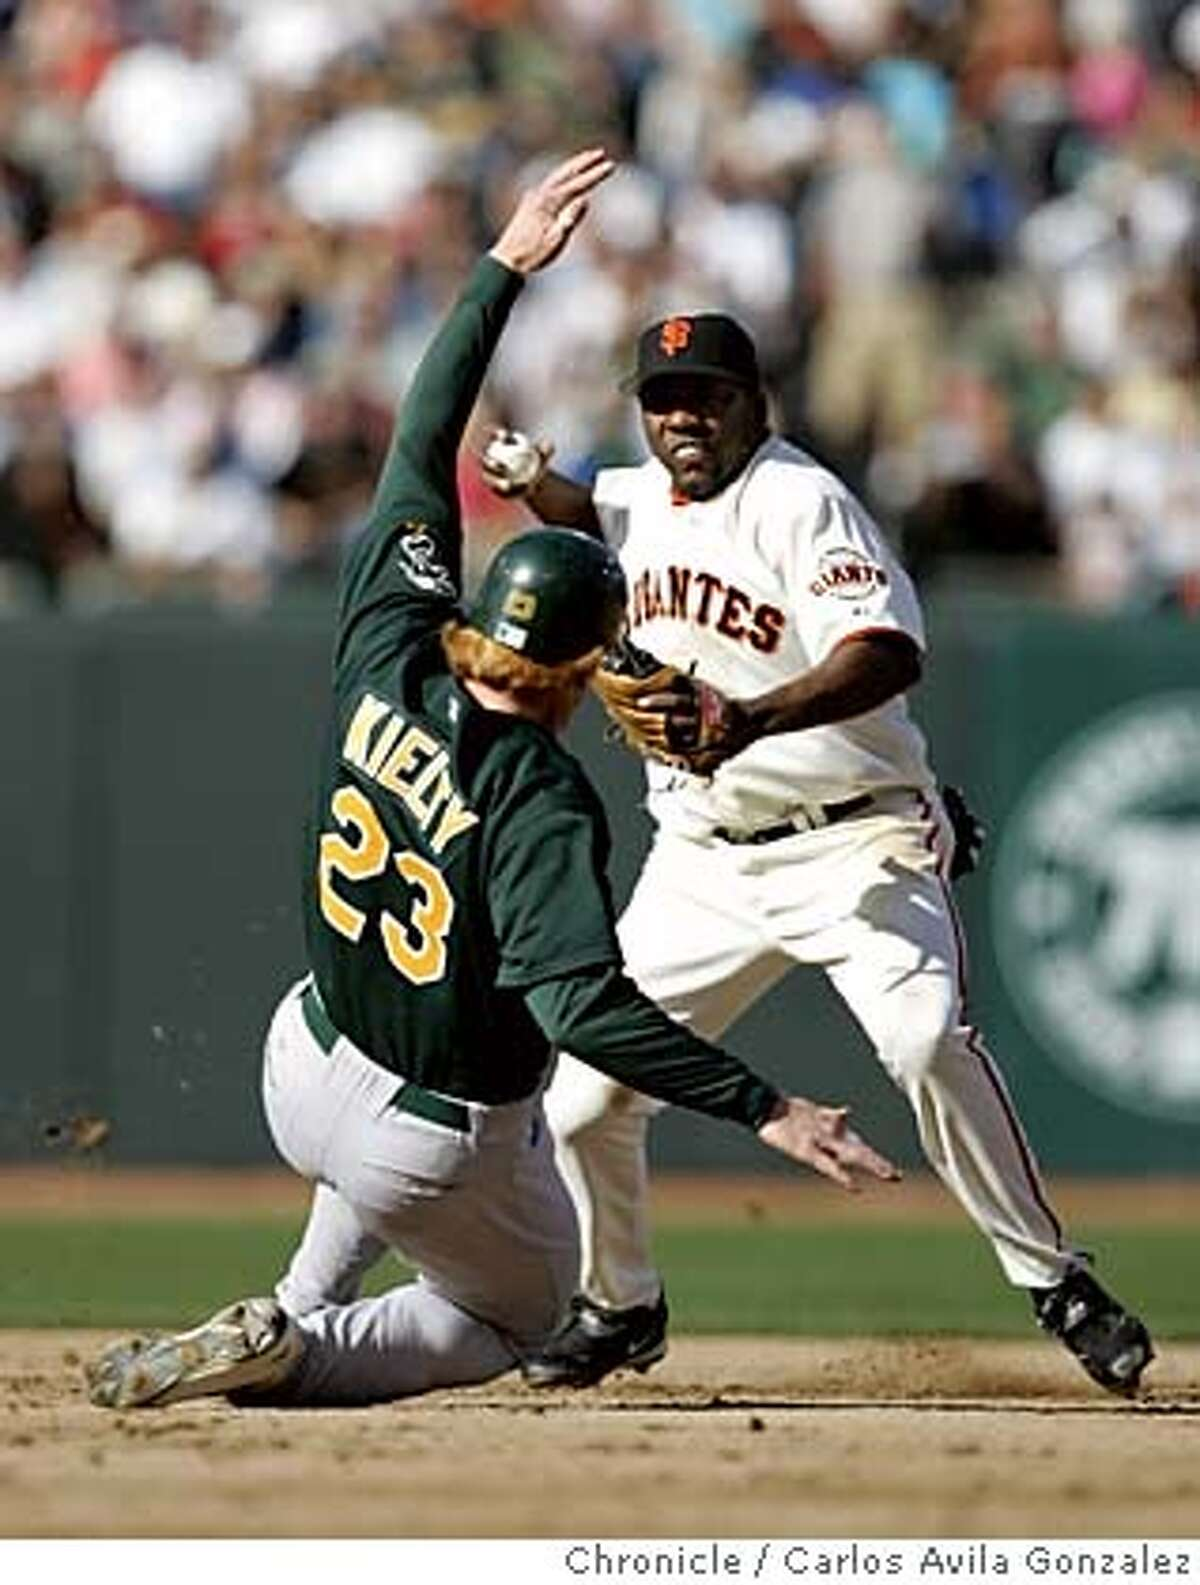 Athletics' Bobby Kielty, tries to break up a double play by Giants' short stop, Deivi Cruz, in the top of the second inning, on a hit by Erubiel Durazo. The San Francisco Giants played the Oakland Athletics at SBC Park in San Francisco, Ca., on Sunday, May 22, 2005. The Giants defeated the Athletics 3-1. Photo by Carlos Avila Gonzalez / The San Francisco Chronicle Photo taken on 5/22/05, in San Francisco,CA.